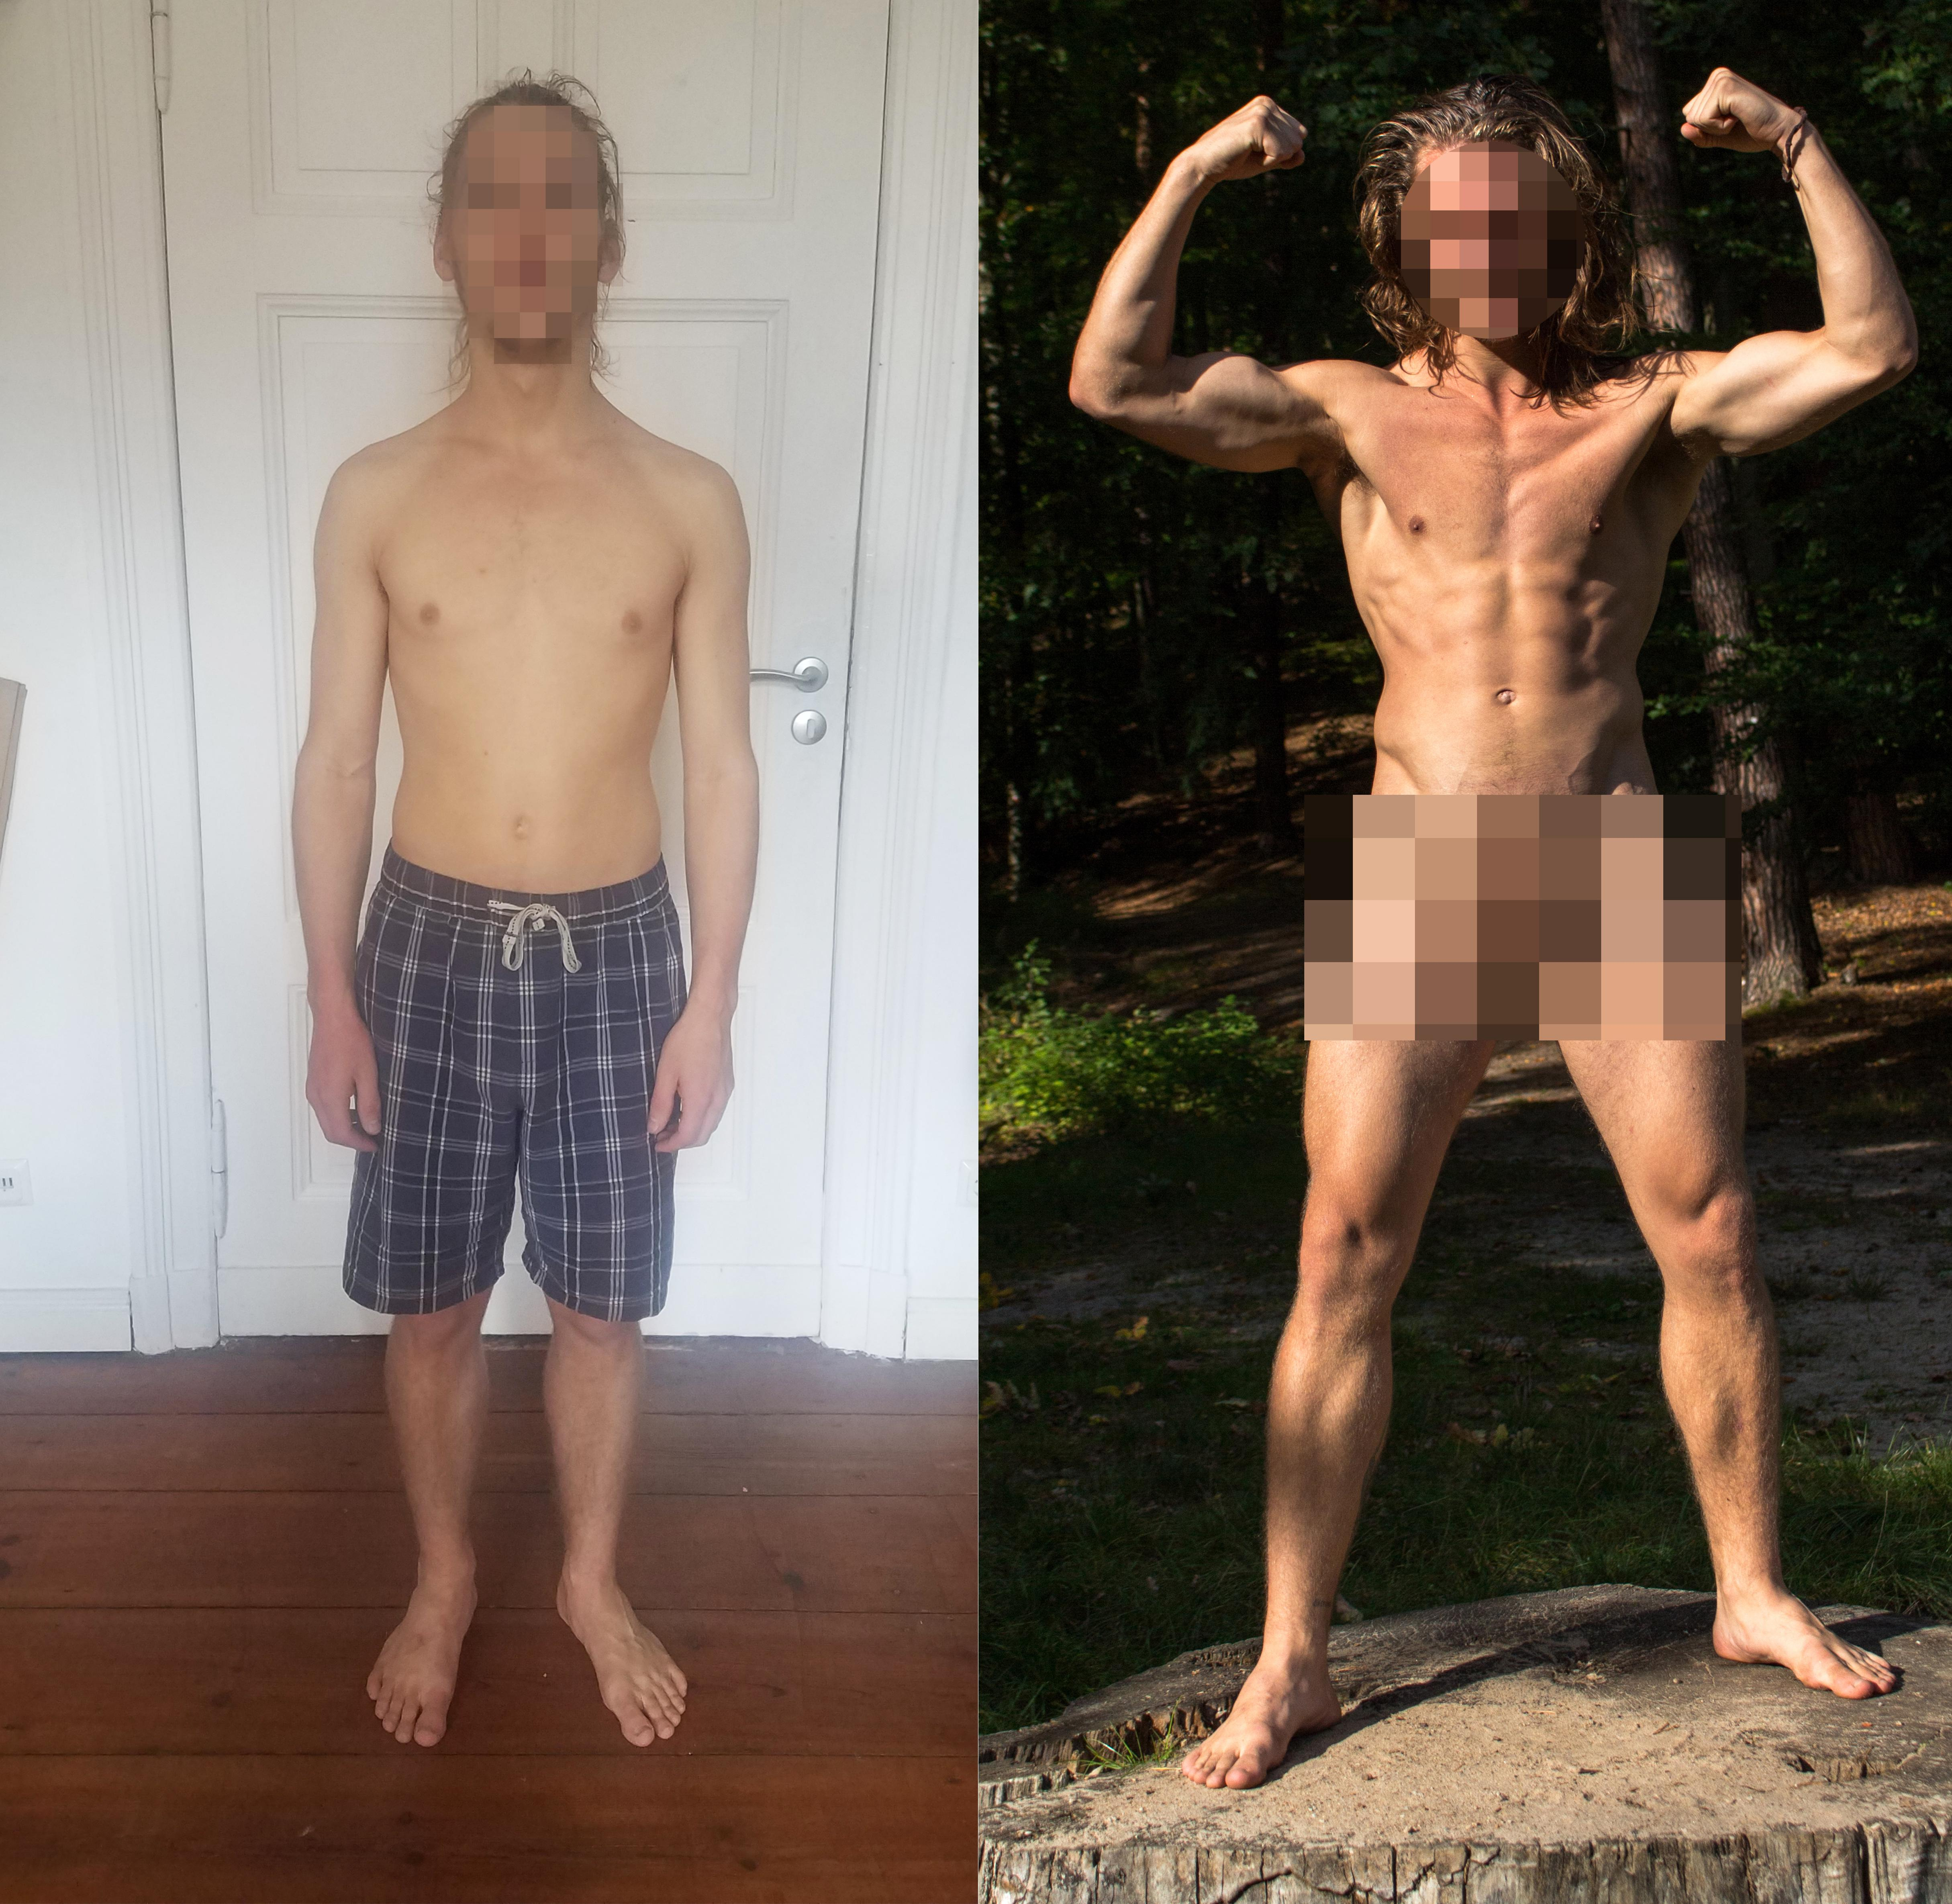 5 foot 10 Male 5 lbs Muscle Gain Before and After 165 lbs to 170 lbs